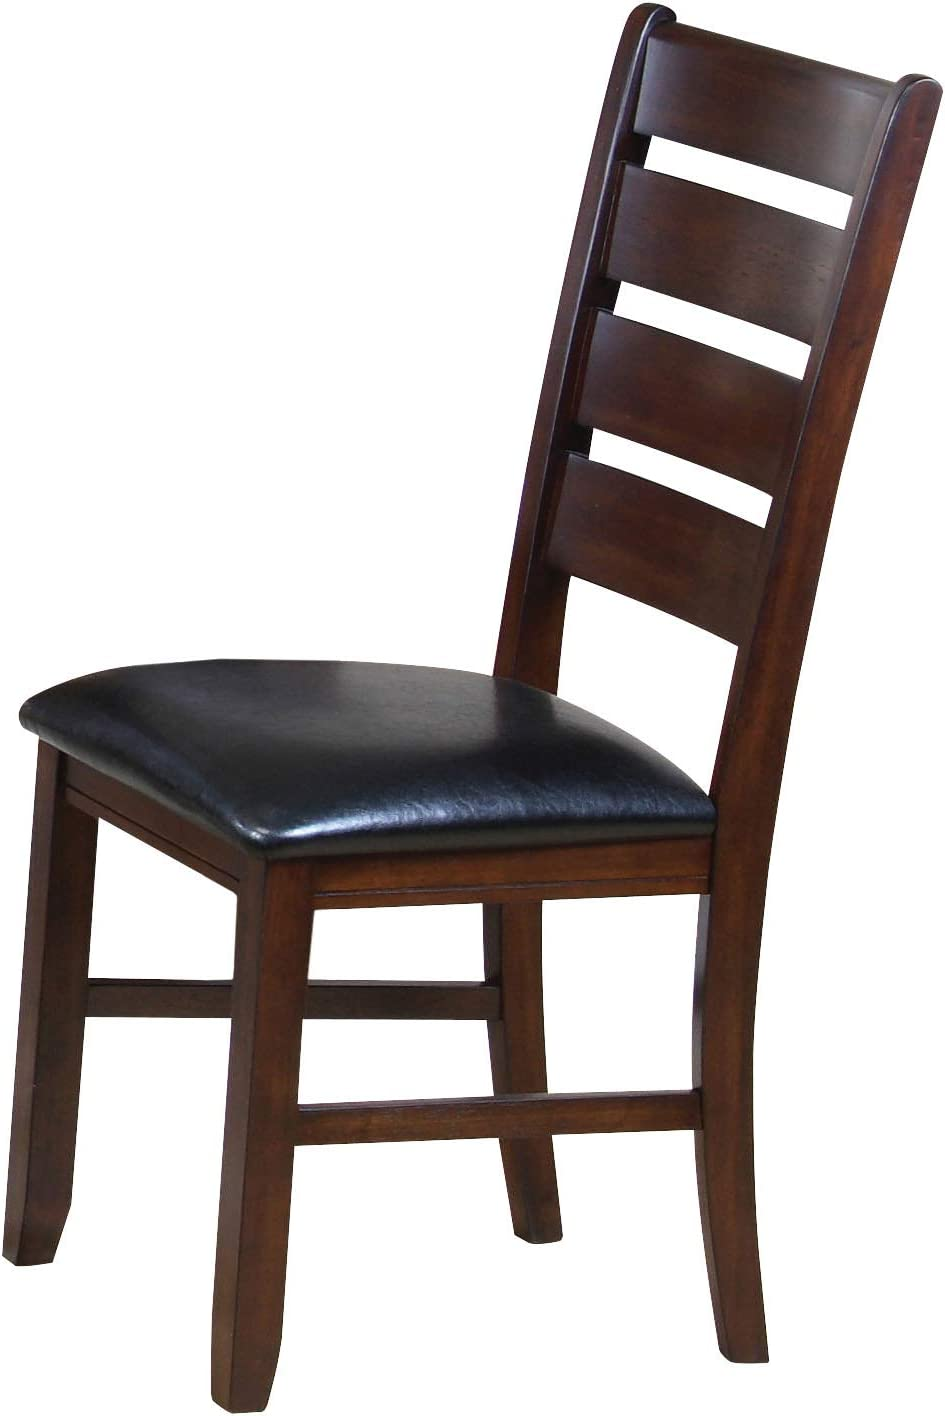 ACME 0 Set of 2 Solid Hardwood Dining Chair, Country Cherry Finish